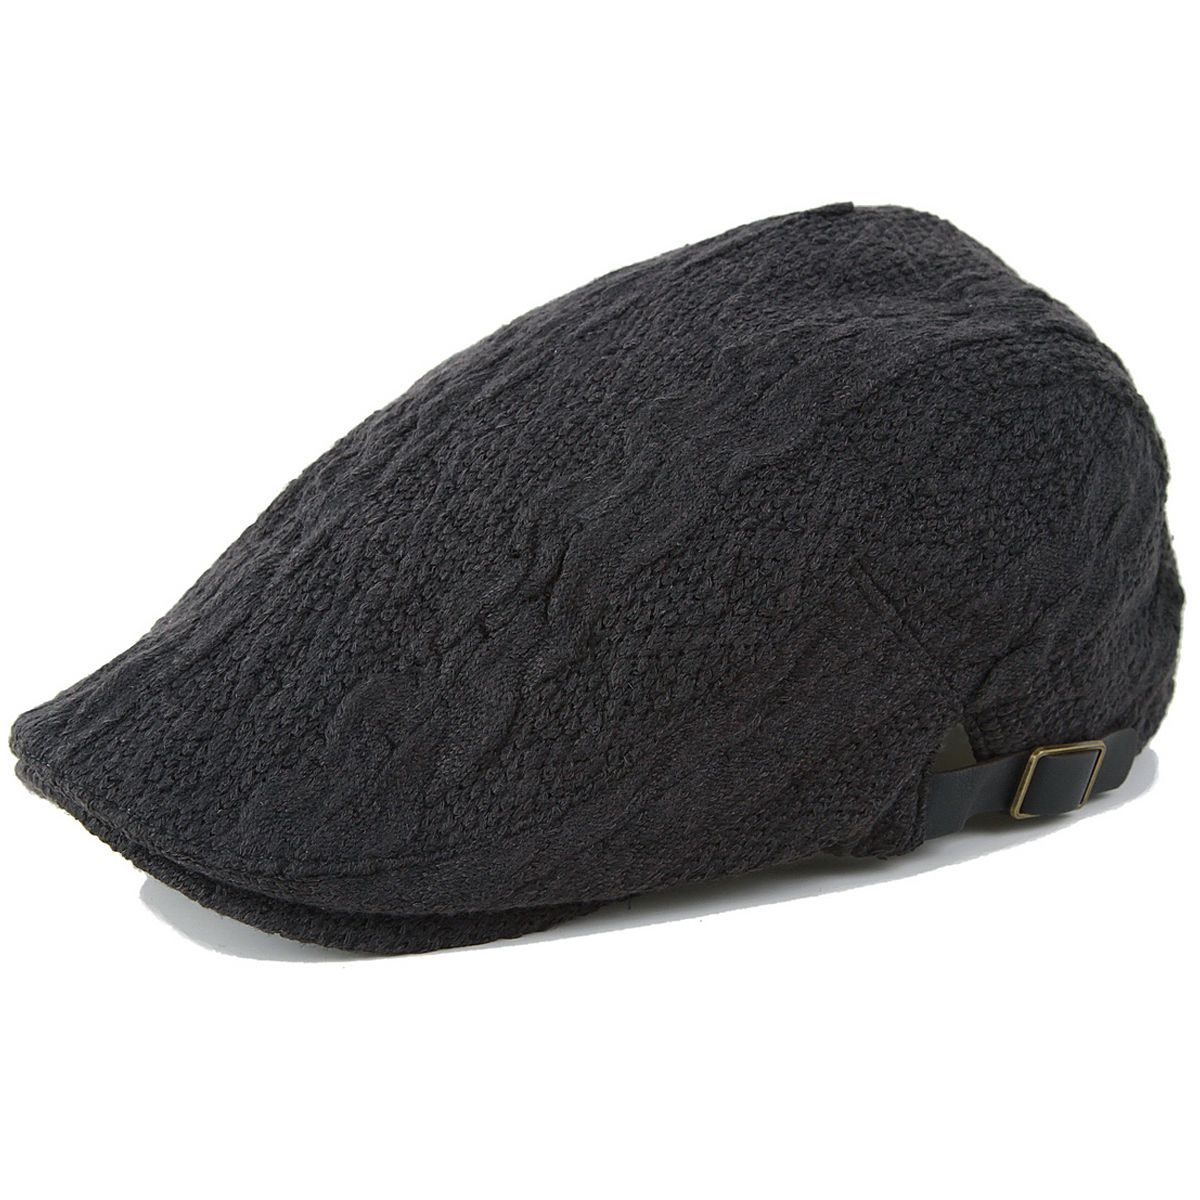 4129ce03021 Chic Fashion Hat Flat Cap Ivy Slap Cabby Gatsby Driving Black ib2109d